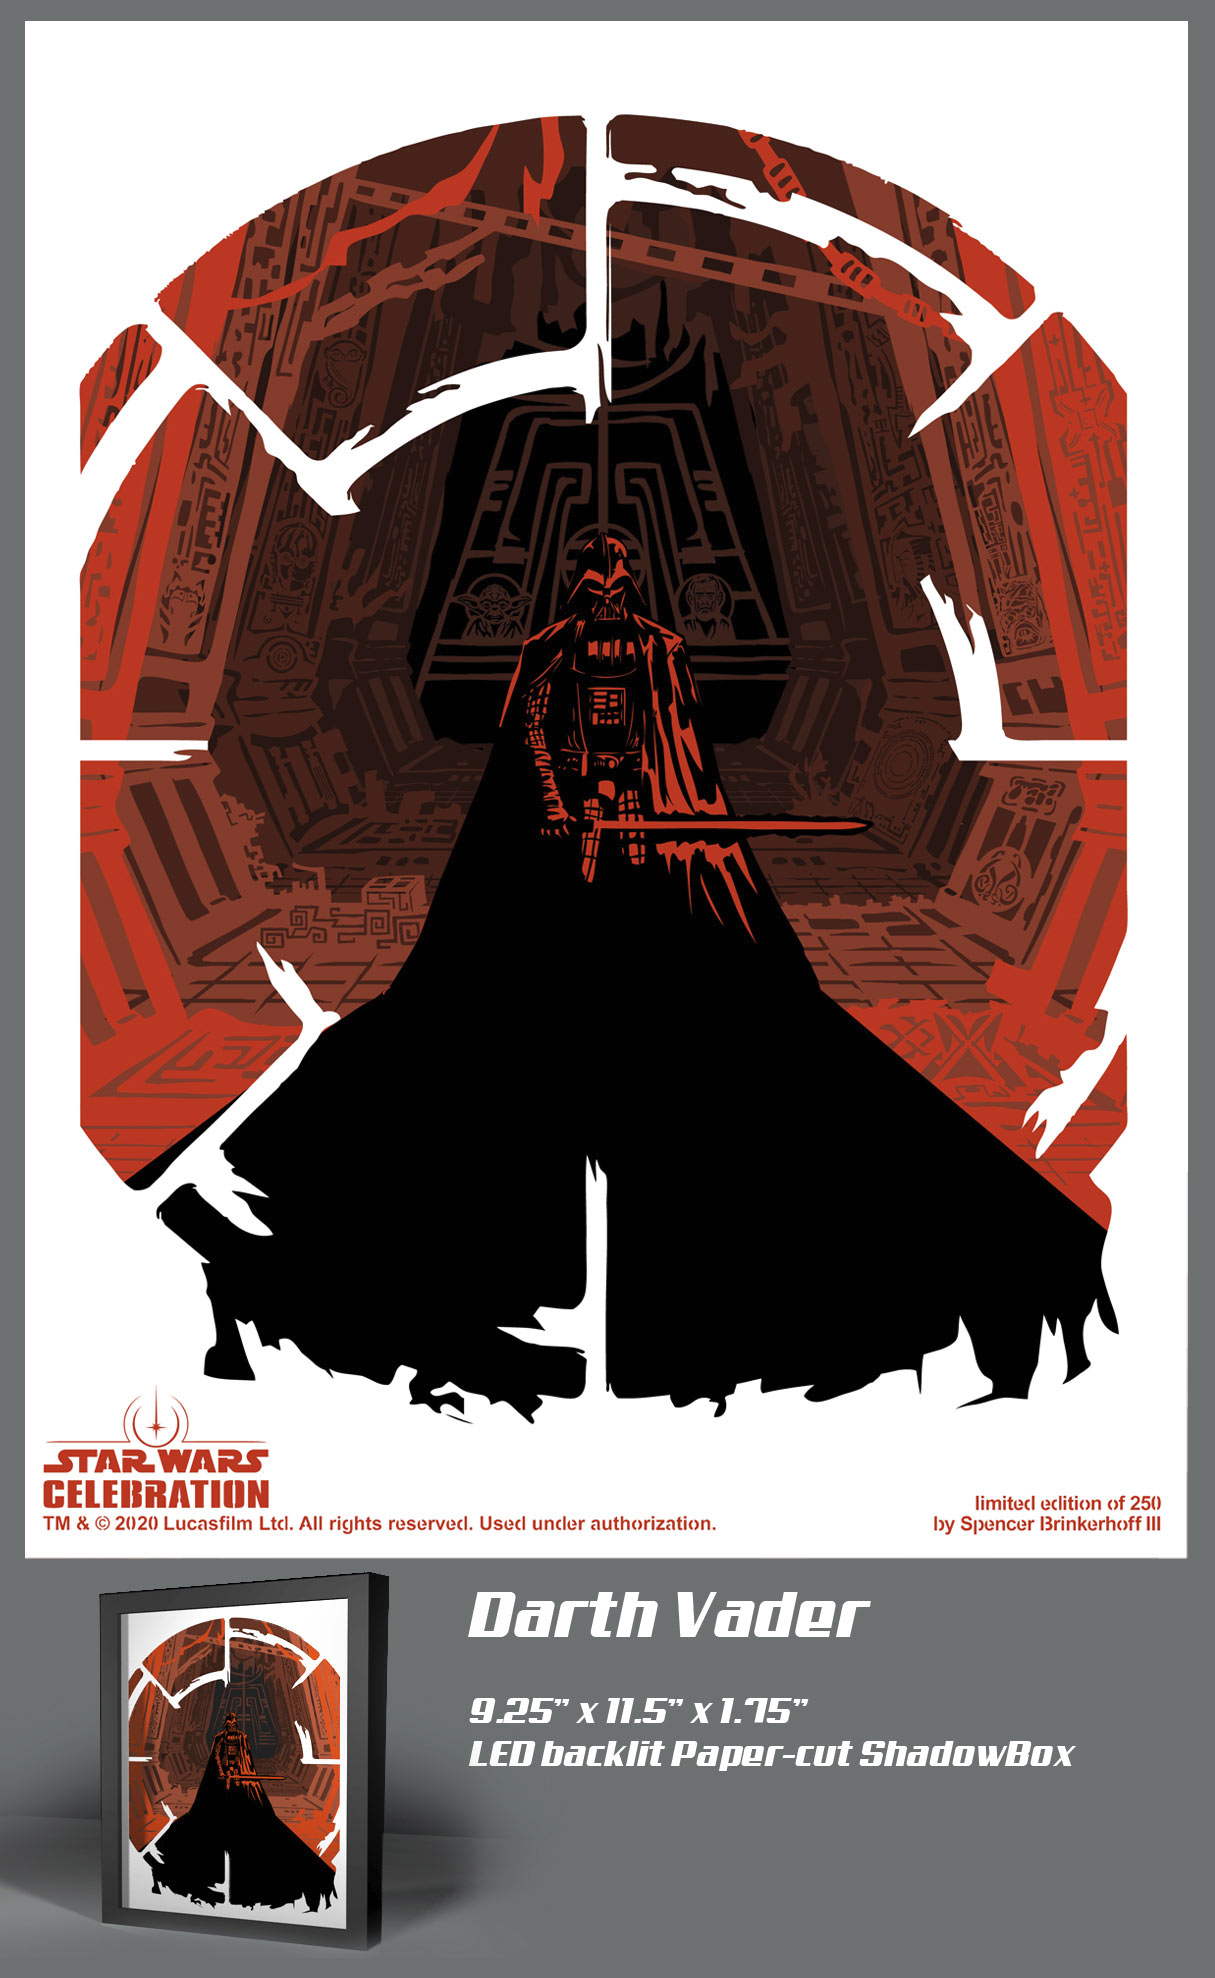 Star Wars Celebration 2020 Art Show: Darth Vader